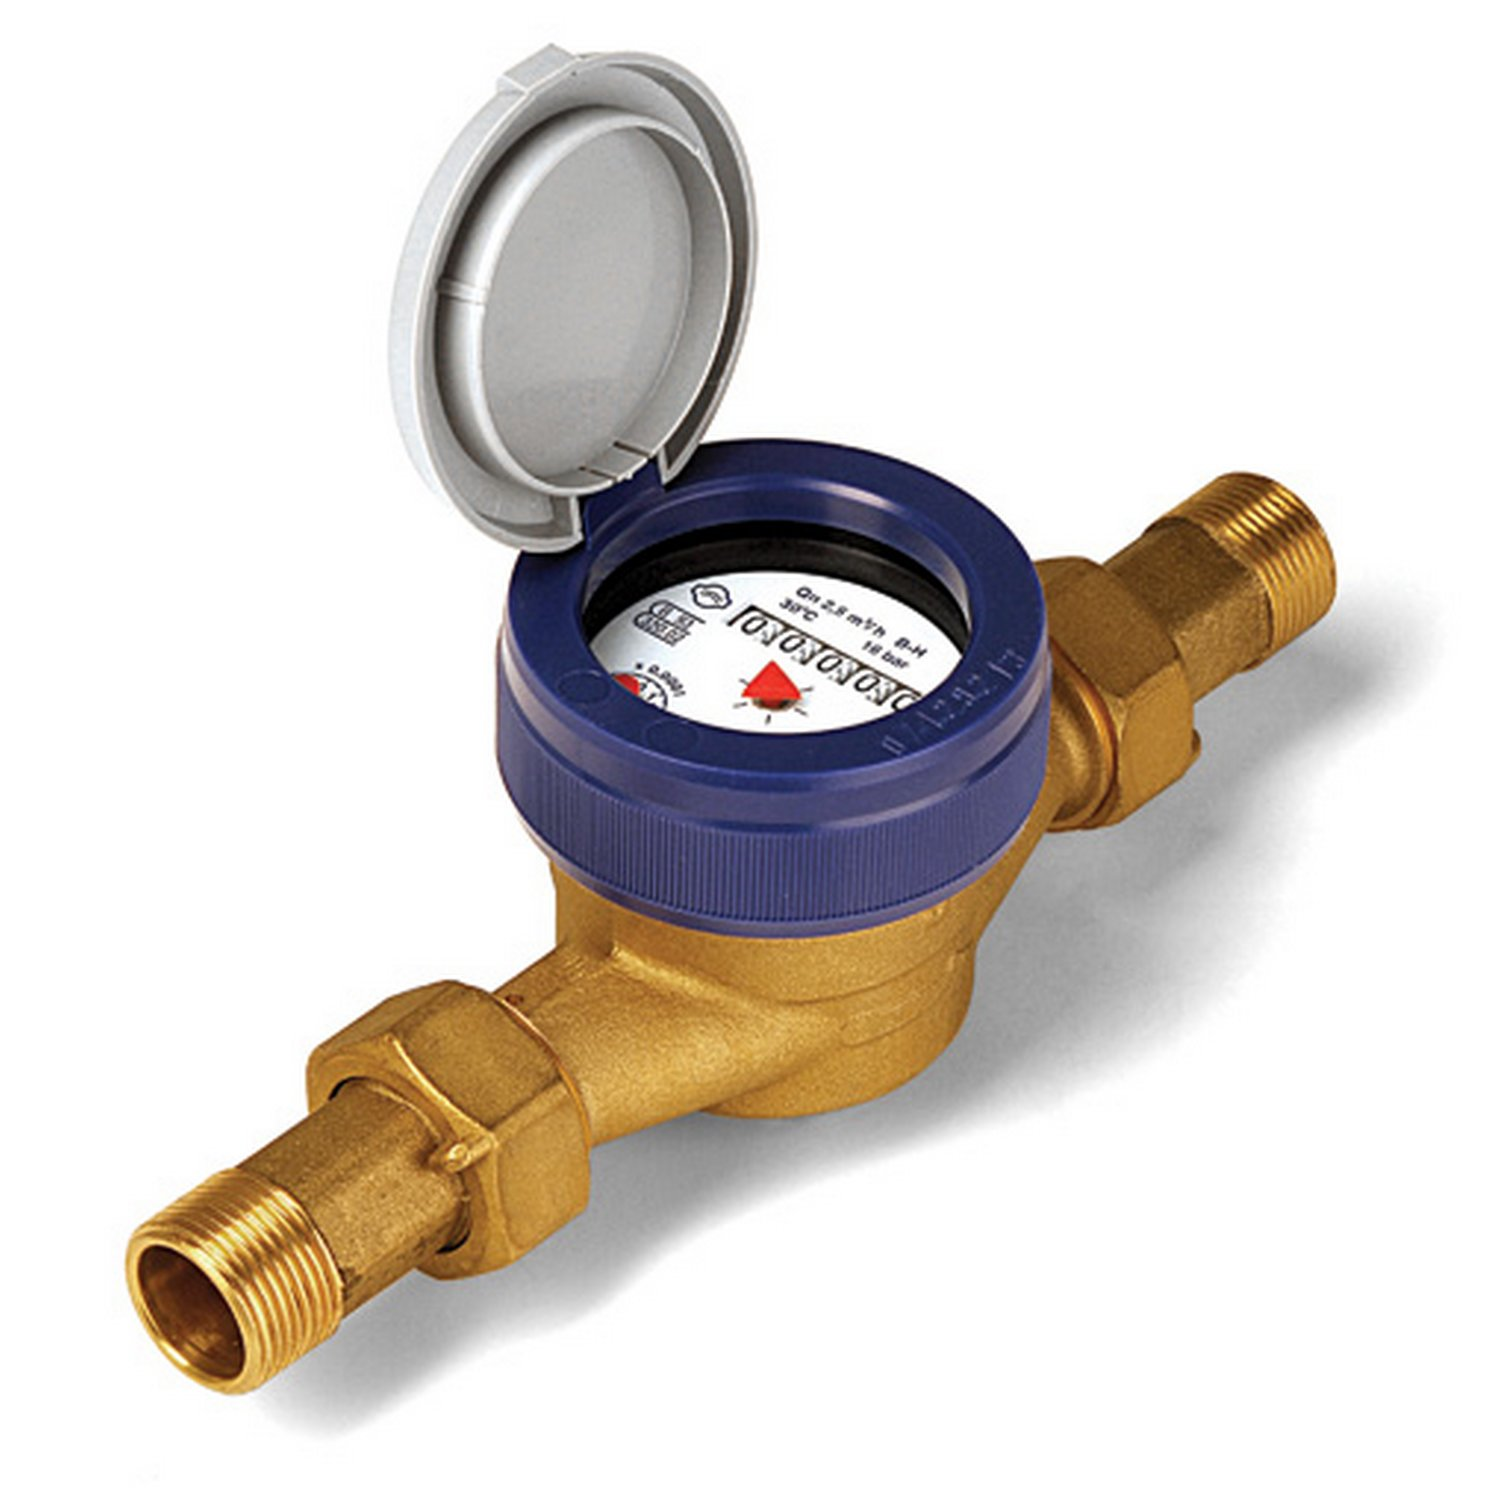 https://www.mepstock.co.uk/admin/images/Cold water meters - non pulsed 1.jpg